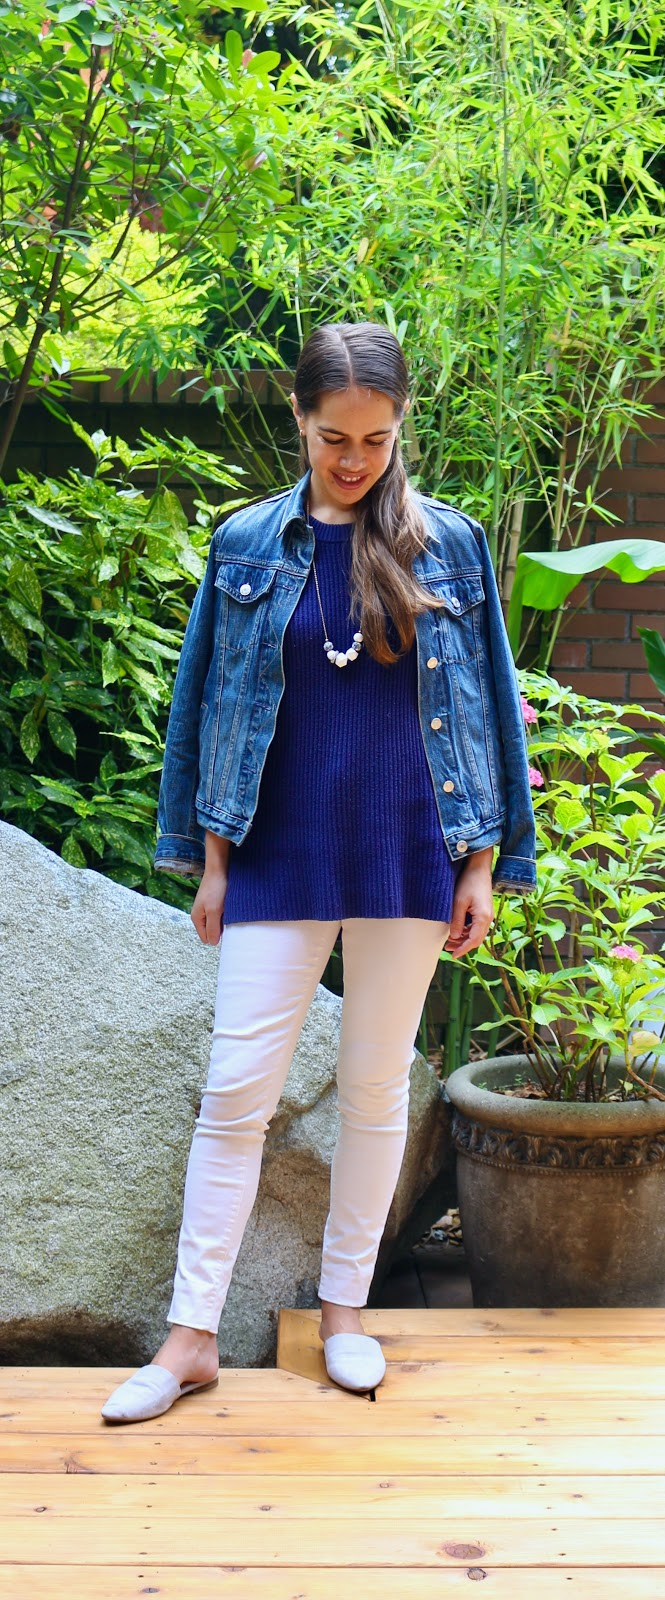 Jules in Flats - Sleeveless Knit Tunic with White Skinny Jeans for Work (Business Casual Workwear on a Budget)